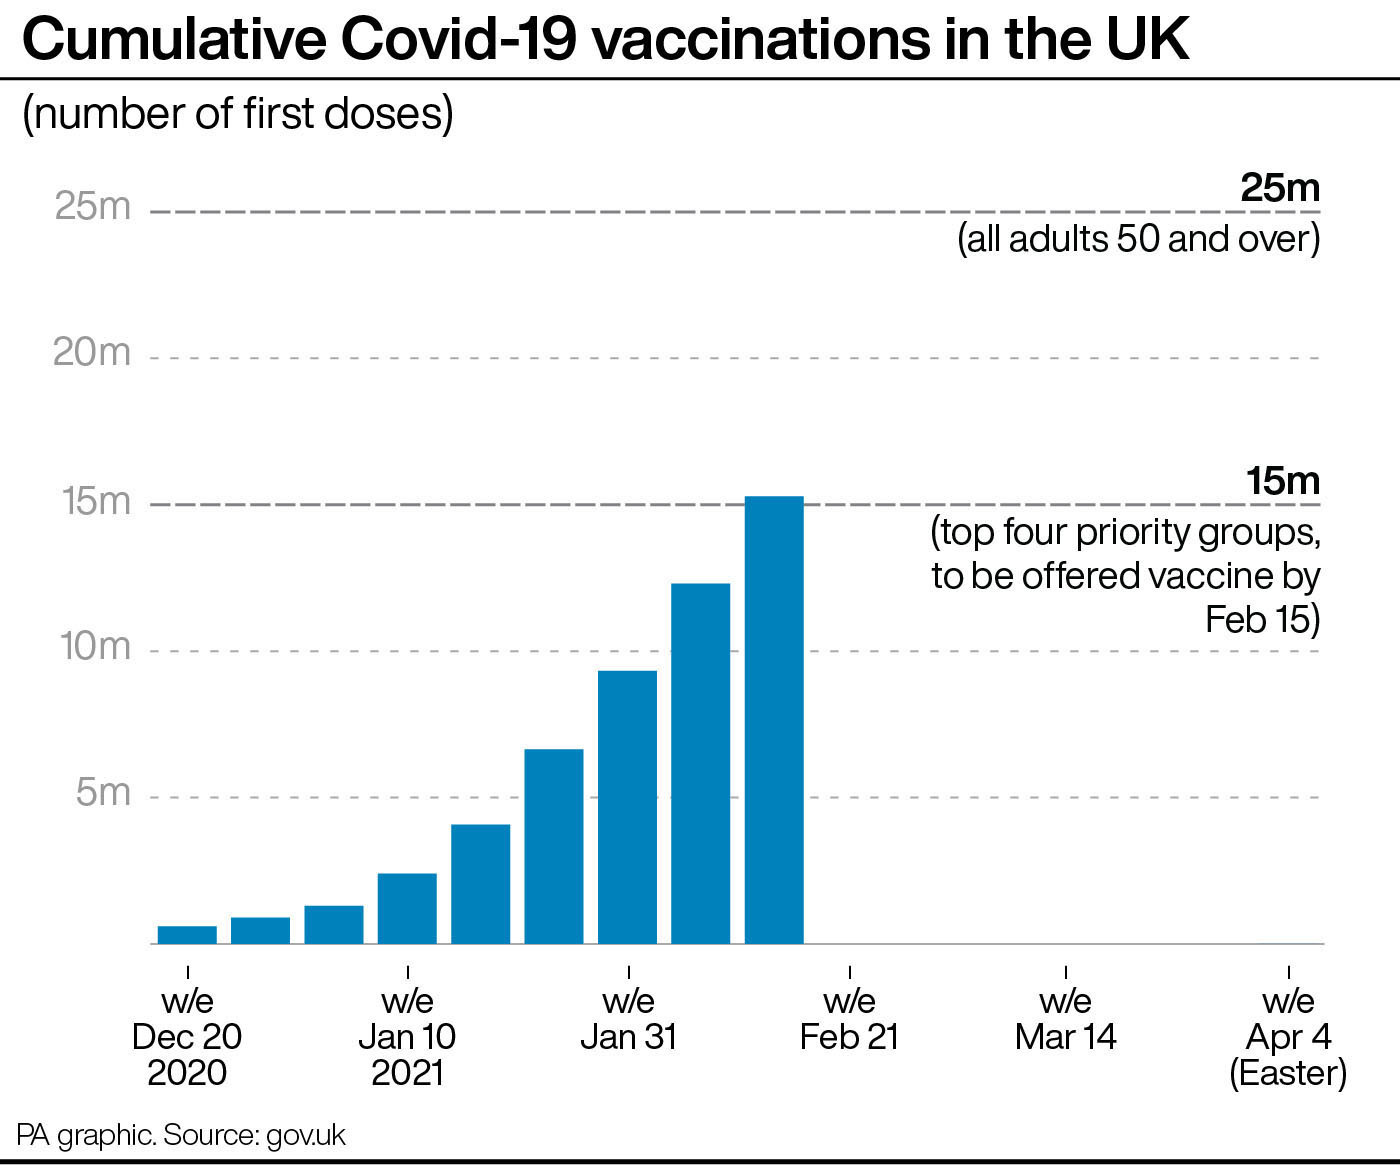 Cumulative Covid-19 vaccinations in the UK. Photo: PA